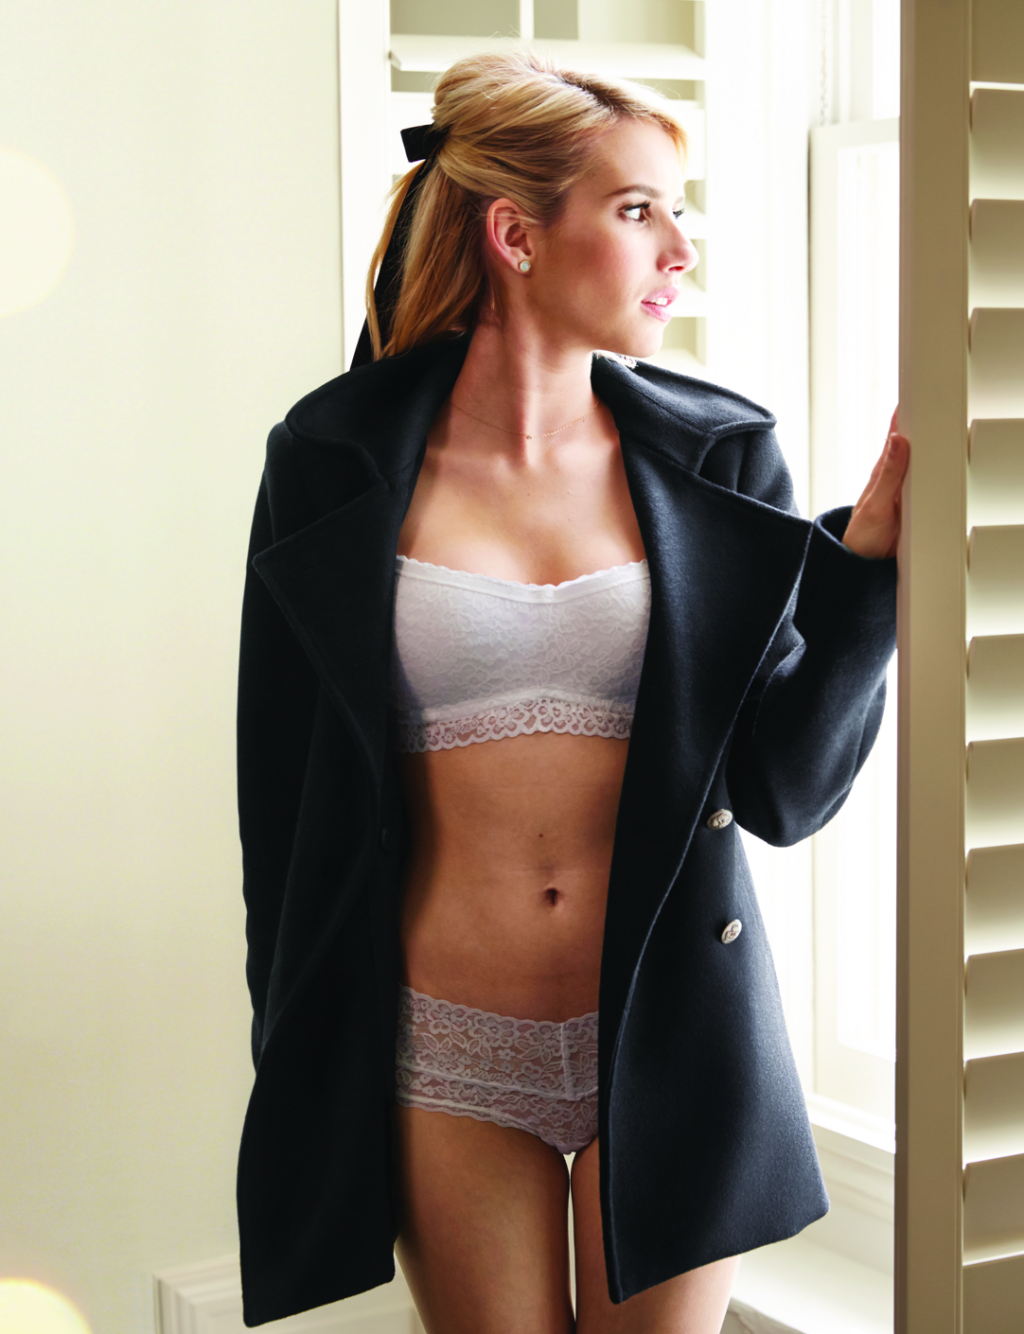 Emma roberts sexy lingerie scene from little italy nude (19 photos), Ass Celebrity picture